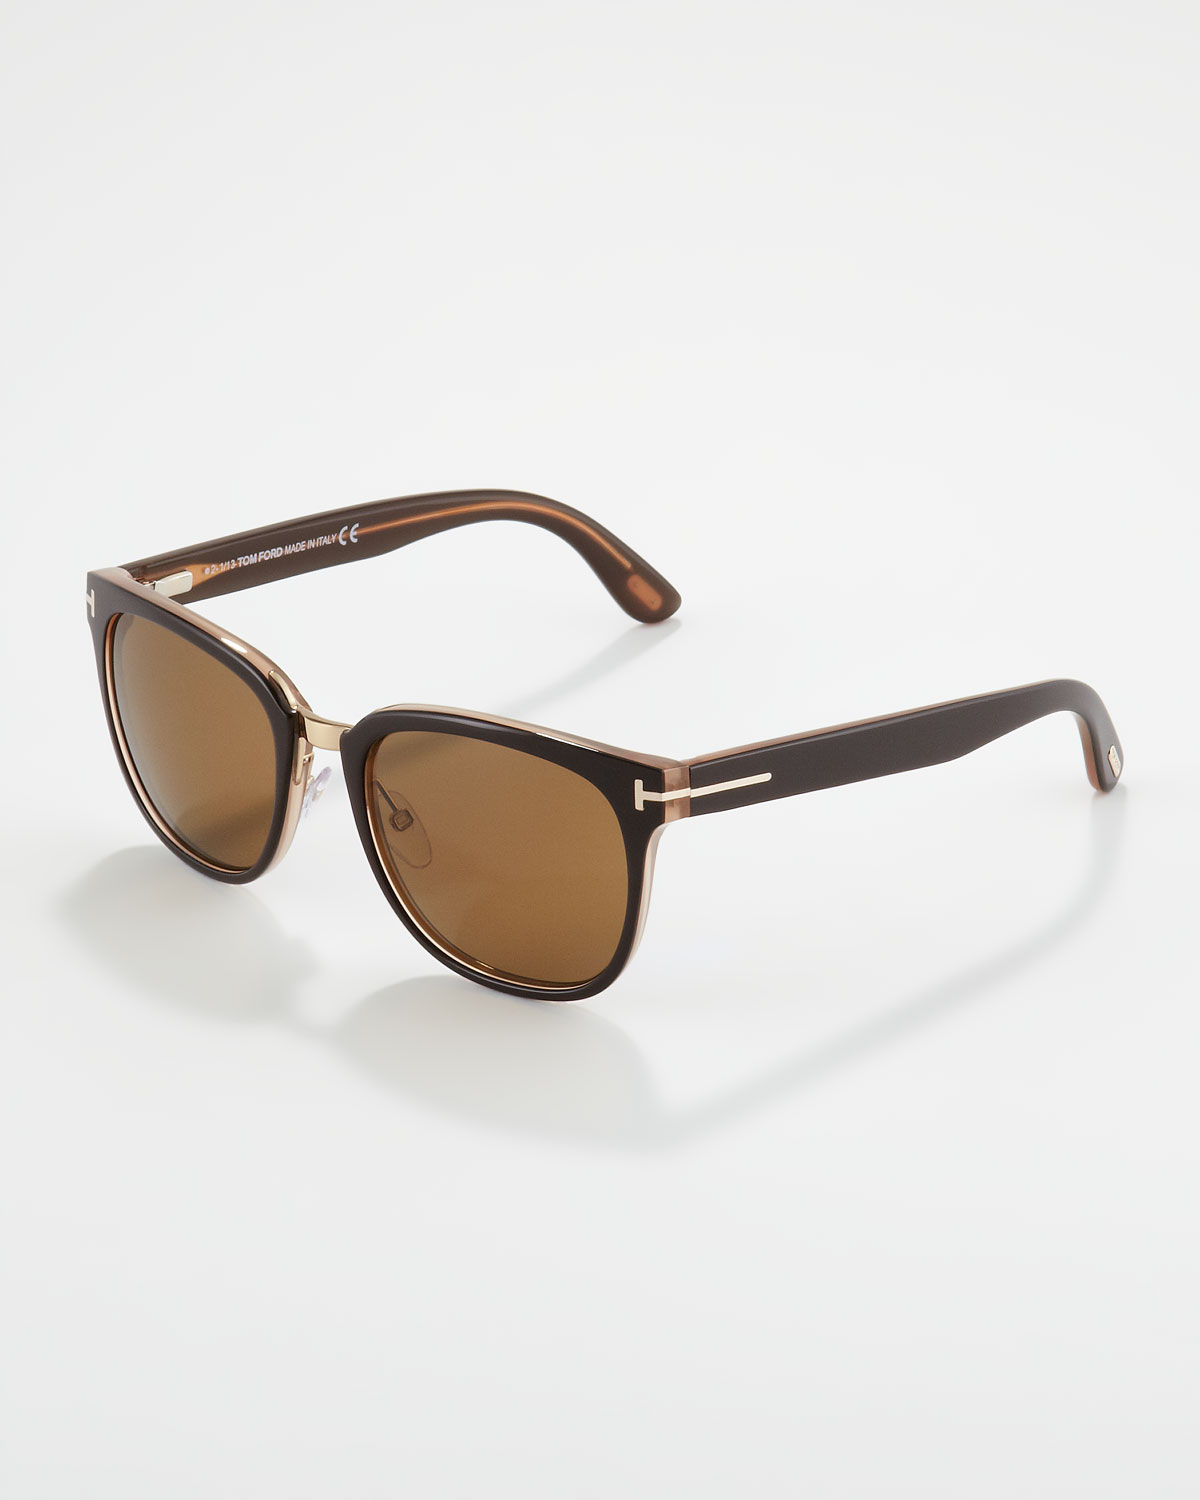 25617086356 Lyst - Tom Ford Rock Clubmaster Sunglasses in Brown for Men